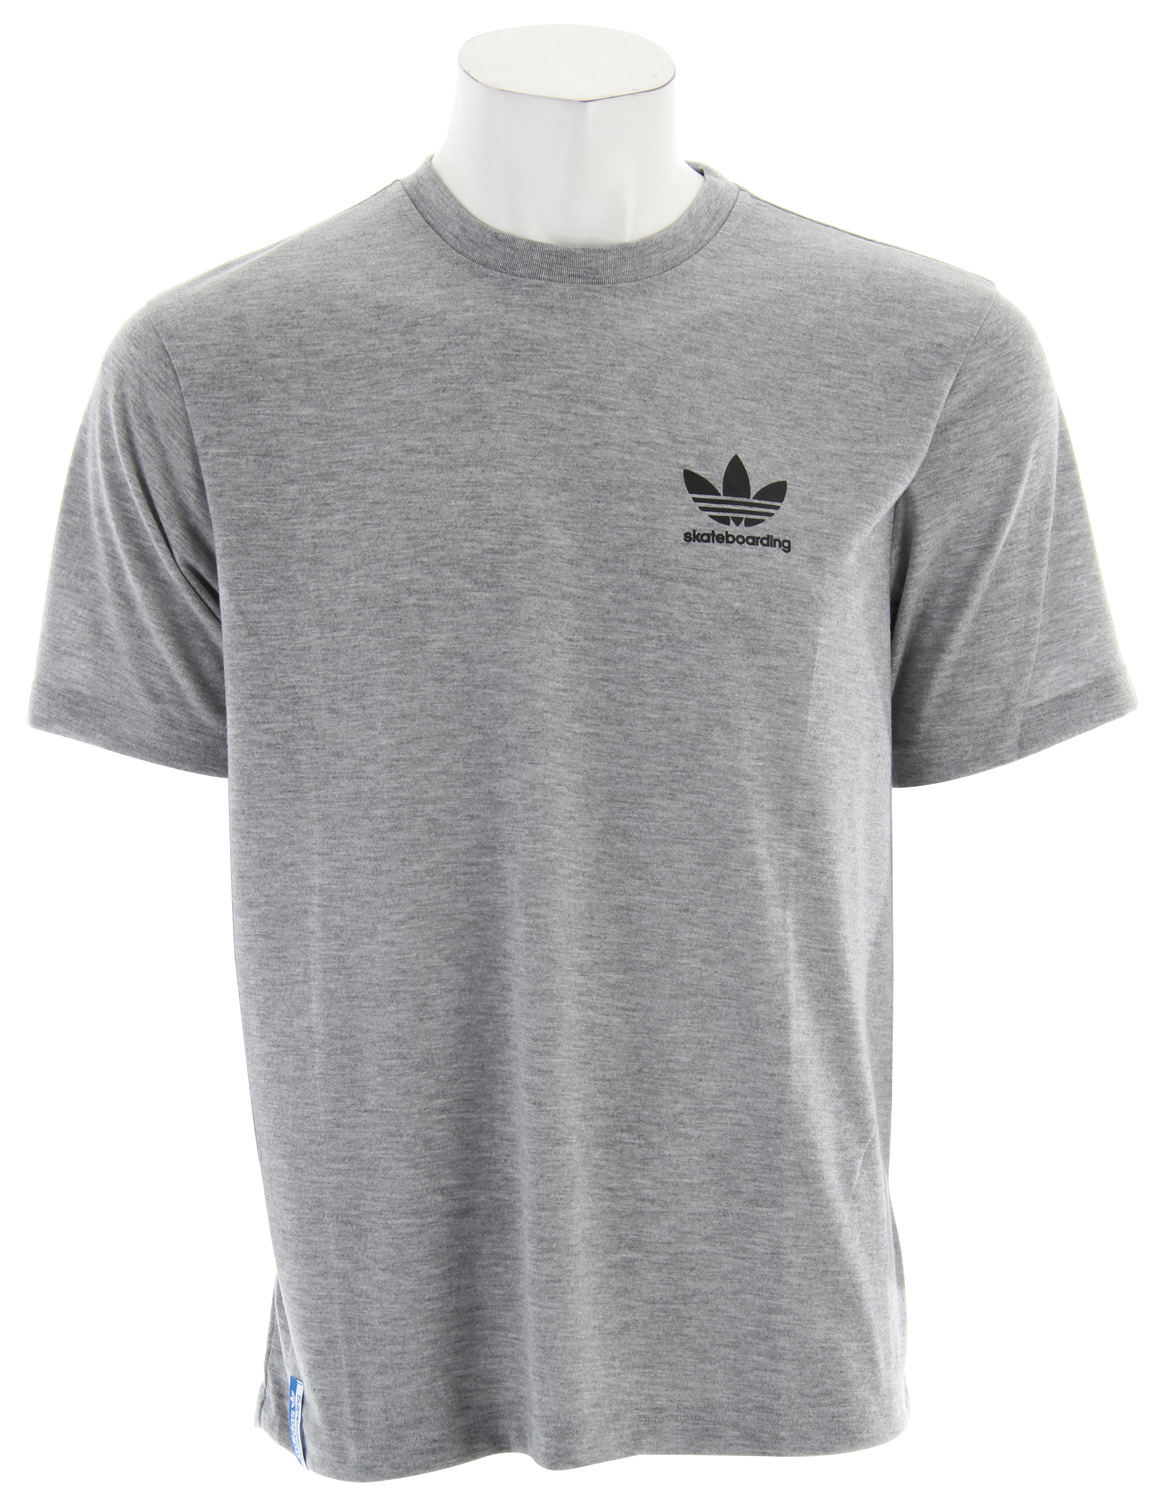 Fitness Key Features of The Adidas Logo T-Shirt: Regular Fit Crew Neck Short Sleeve - $24.95